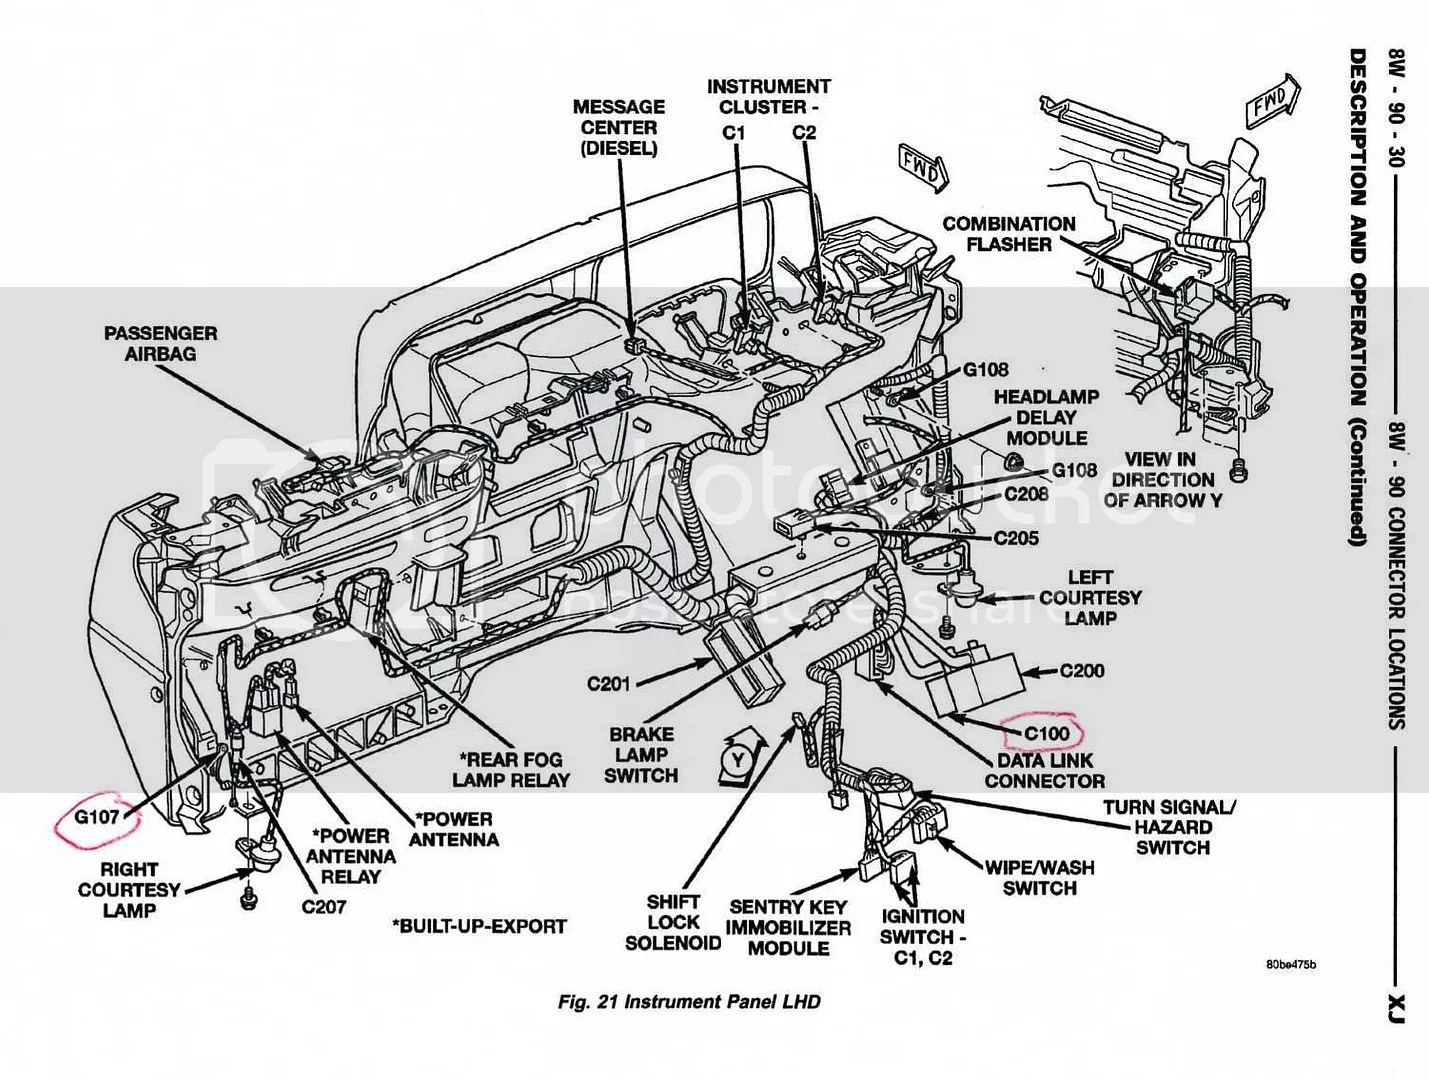 hight resolution of 2001 jeep engine diagram data diagram schematic 2001 jeep wrangler blower motor diagram 2001 jeep wrangler engine diagram